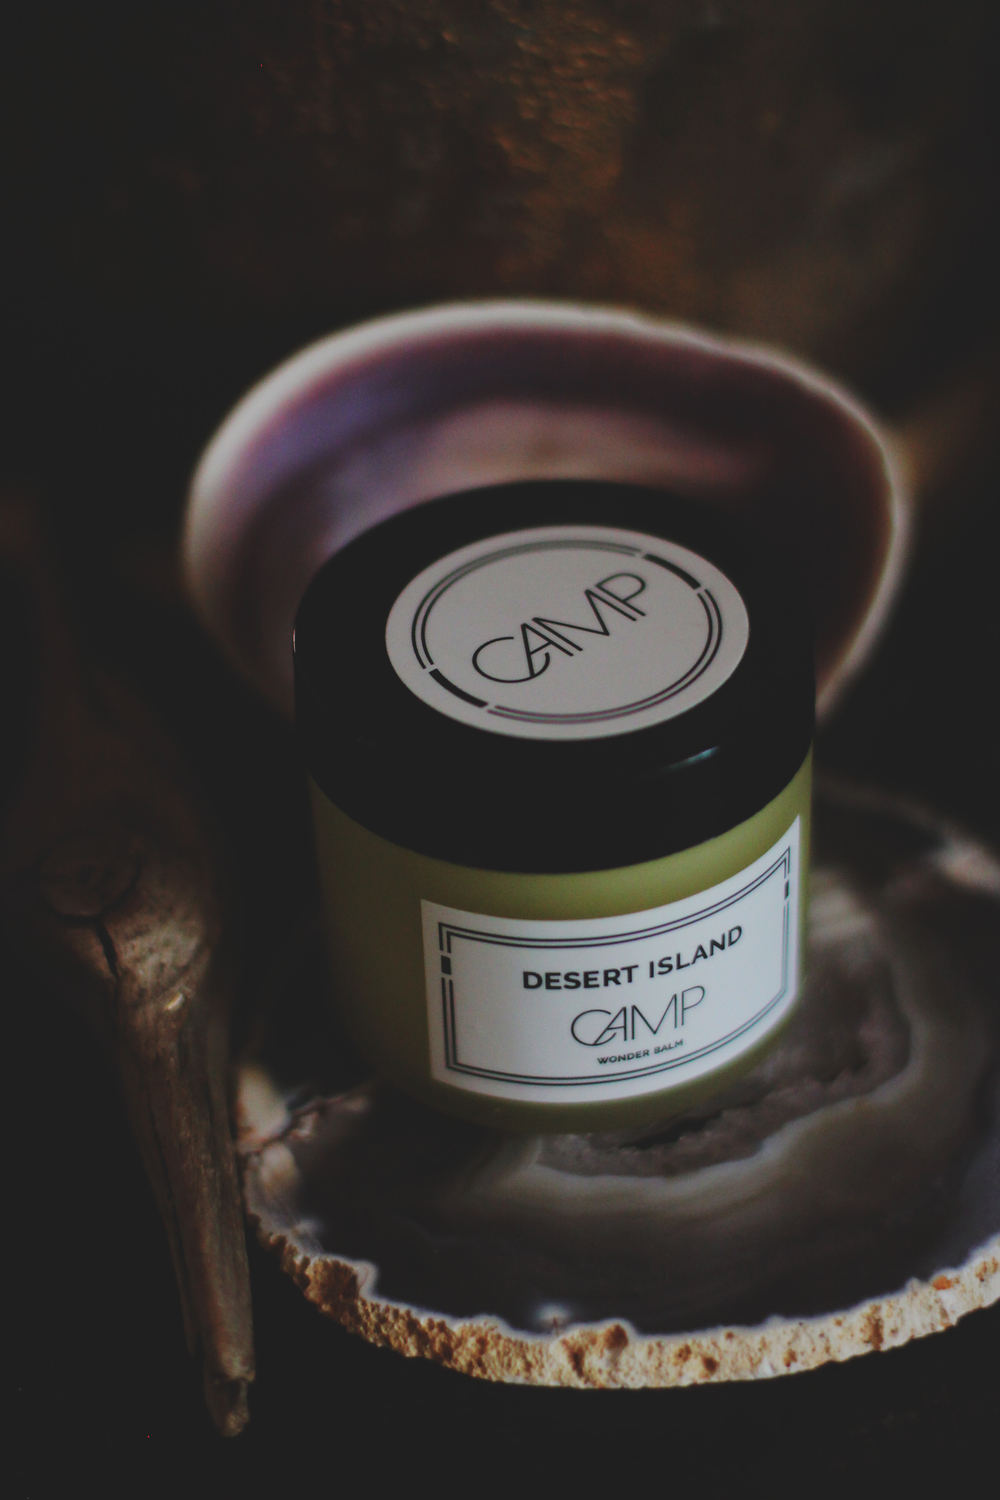 Camp Skincare via bohocollective.com